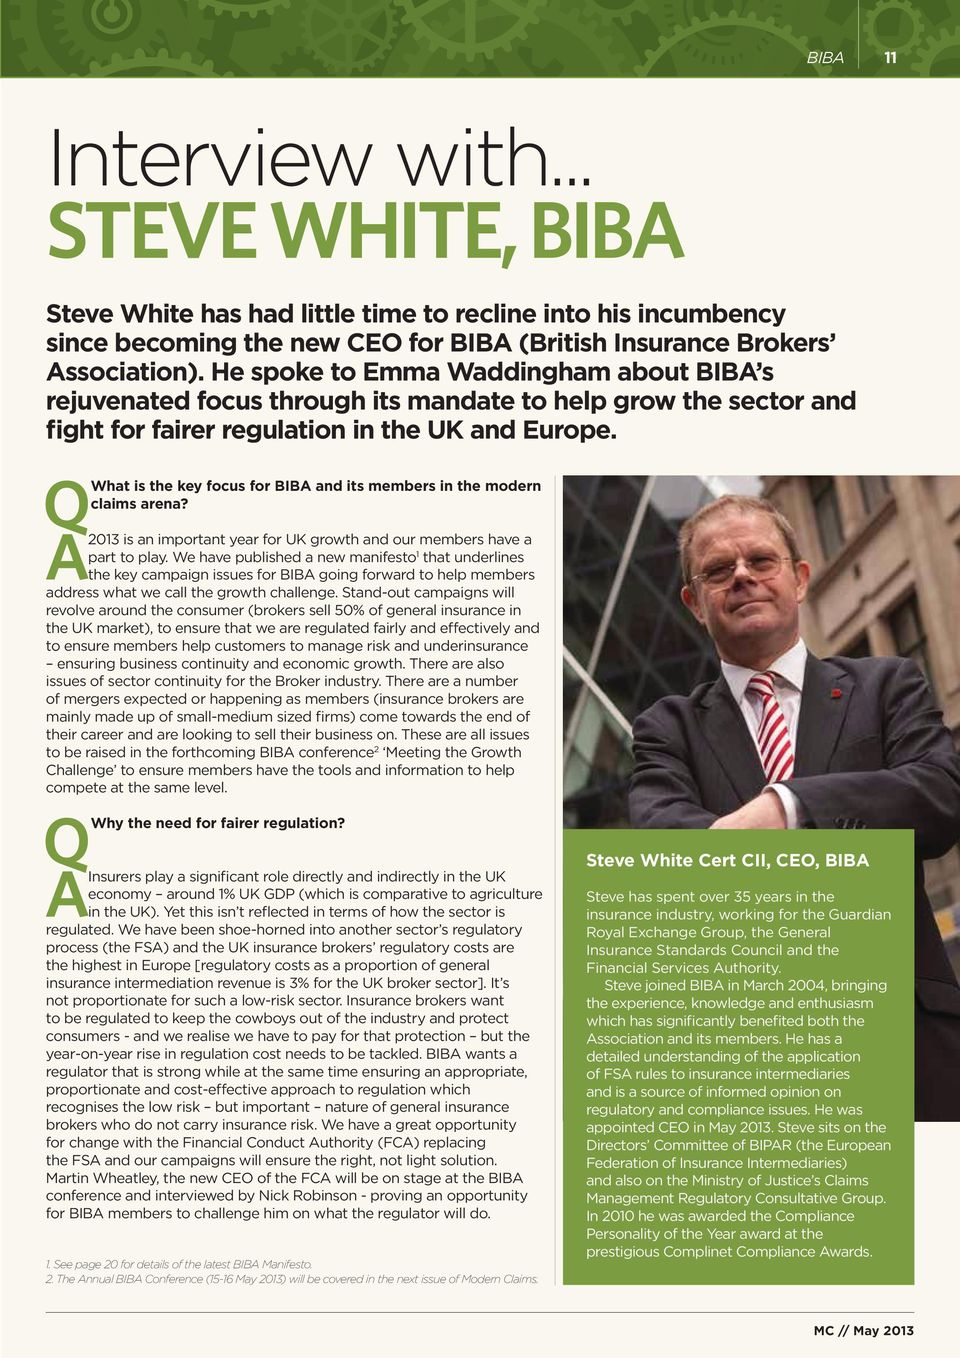 Q What is the key focus for BIBA and its members in the modern claims arena? A 2013 is an important year for UK growth and our members have a part to play.